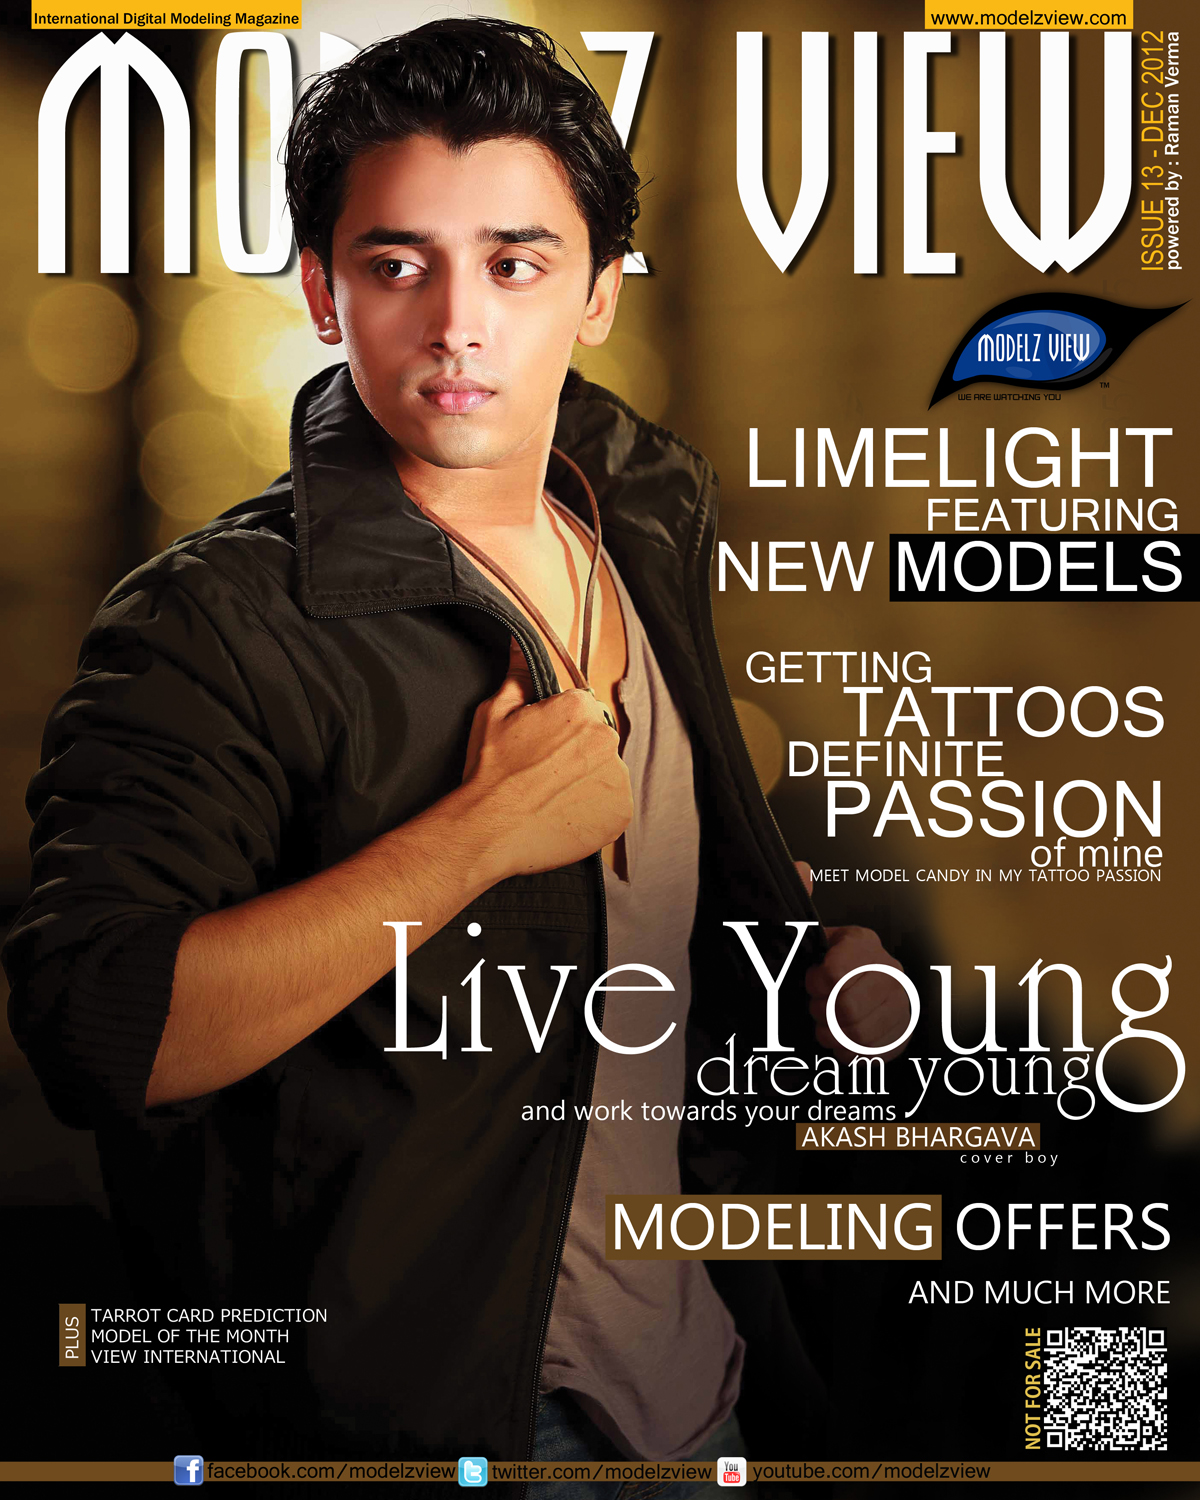 modelz_view_magazine_dec_2012_cover_boy_akash_bhargava